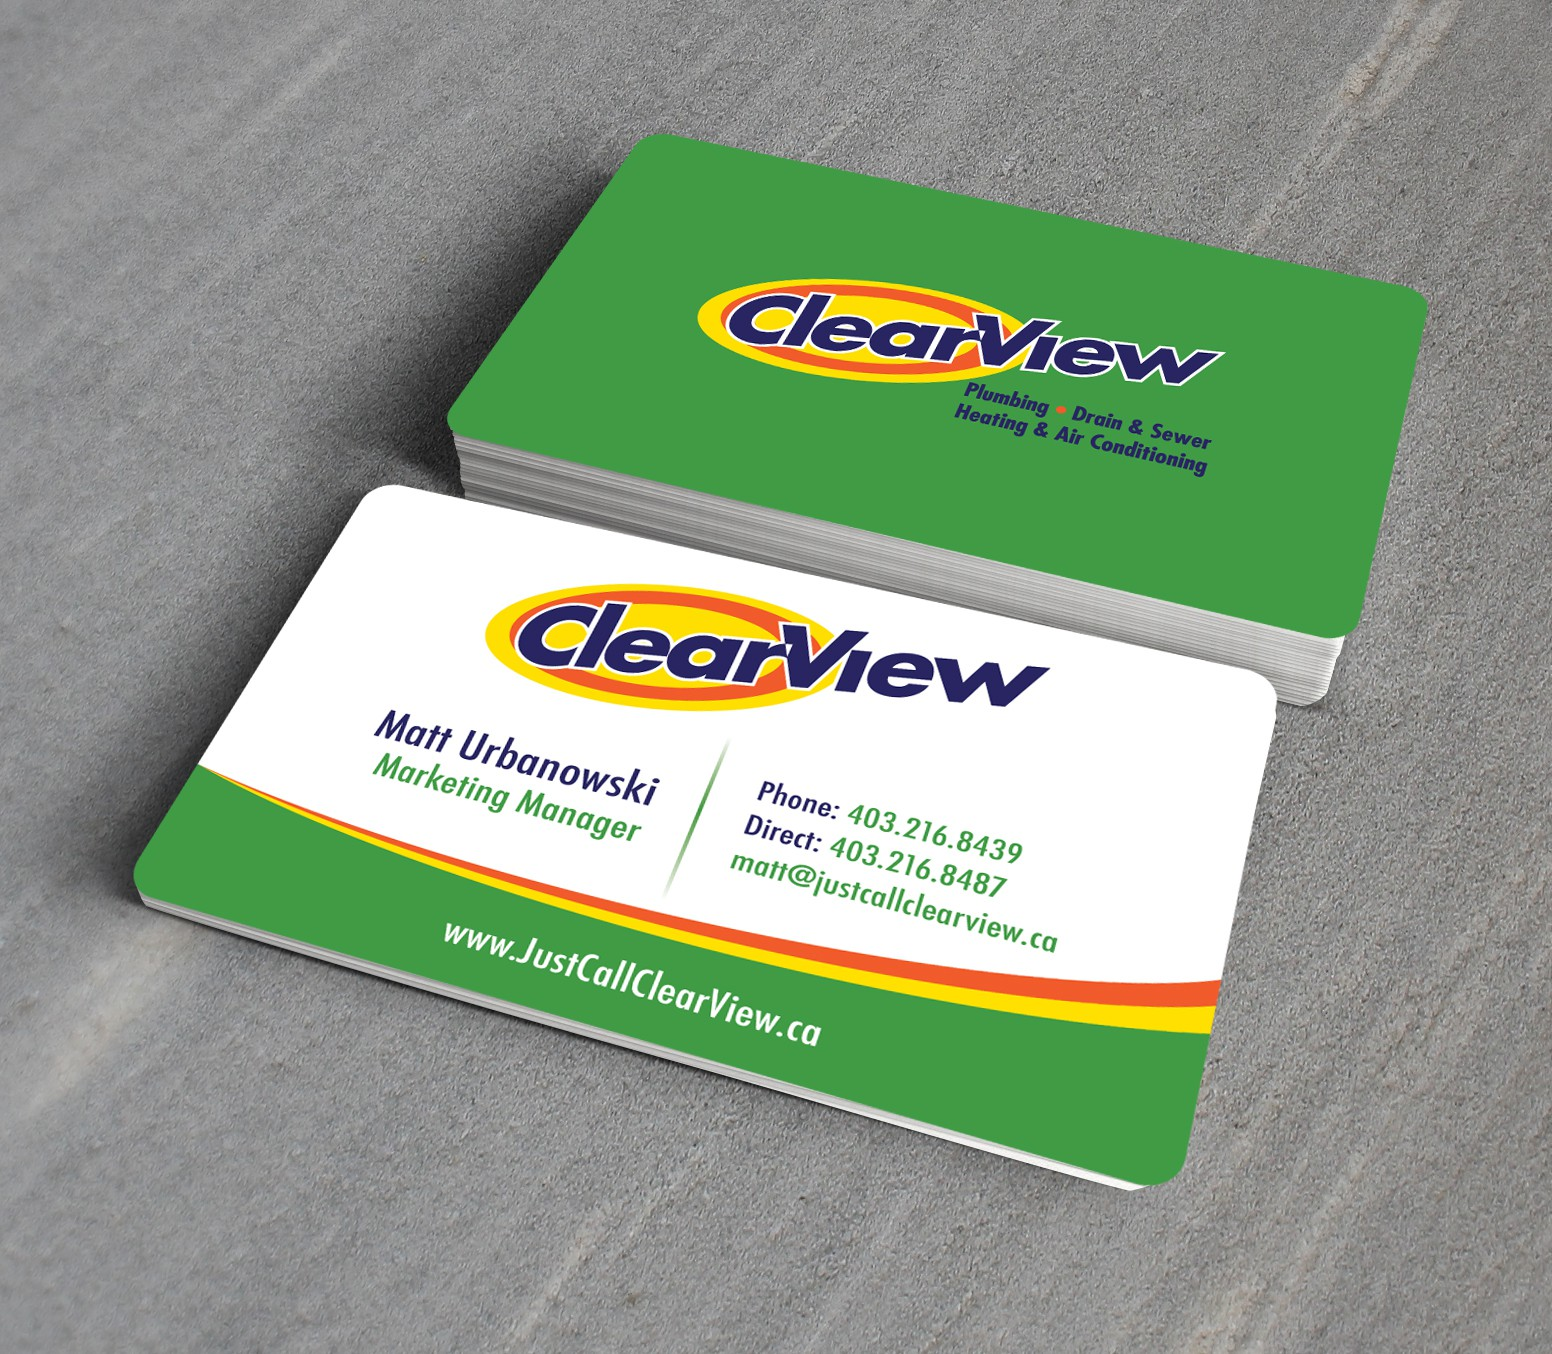 Help Clearview with a New Business Card